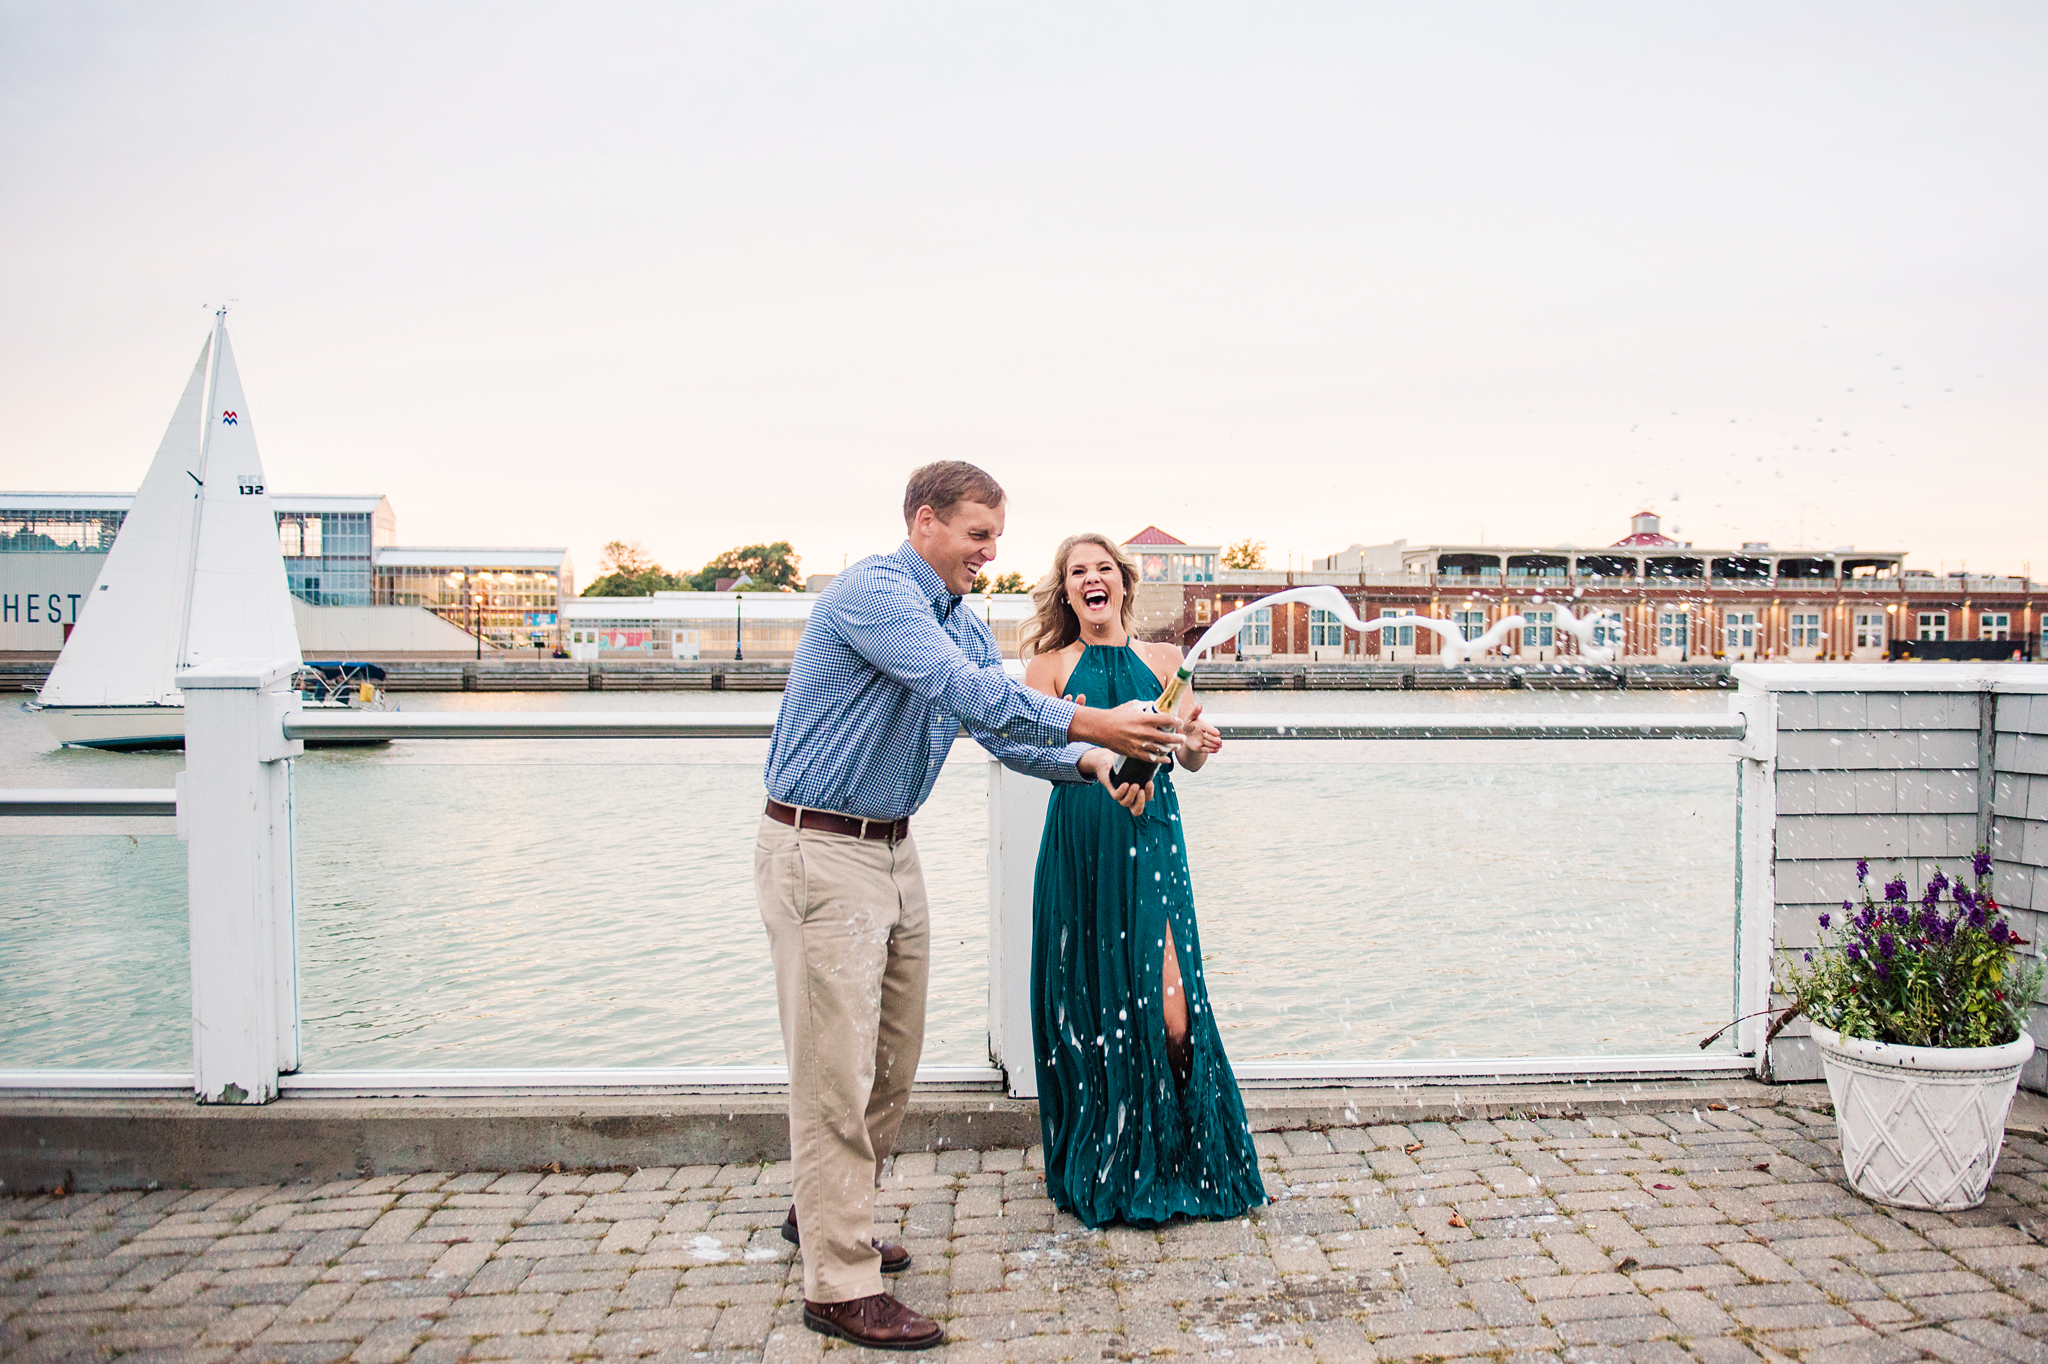 George_Eastman_House_Rochester_Yacht_Club_Rochester_Engagement_Session_JILL_STUDIO_Rochester_NY_Photographer_DSC_8288.jpg